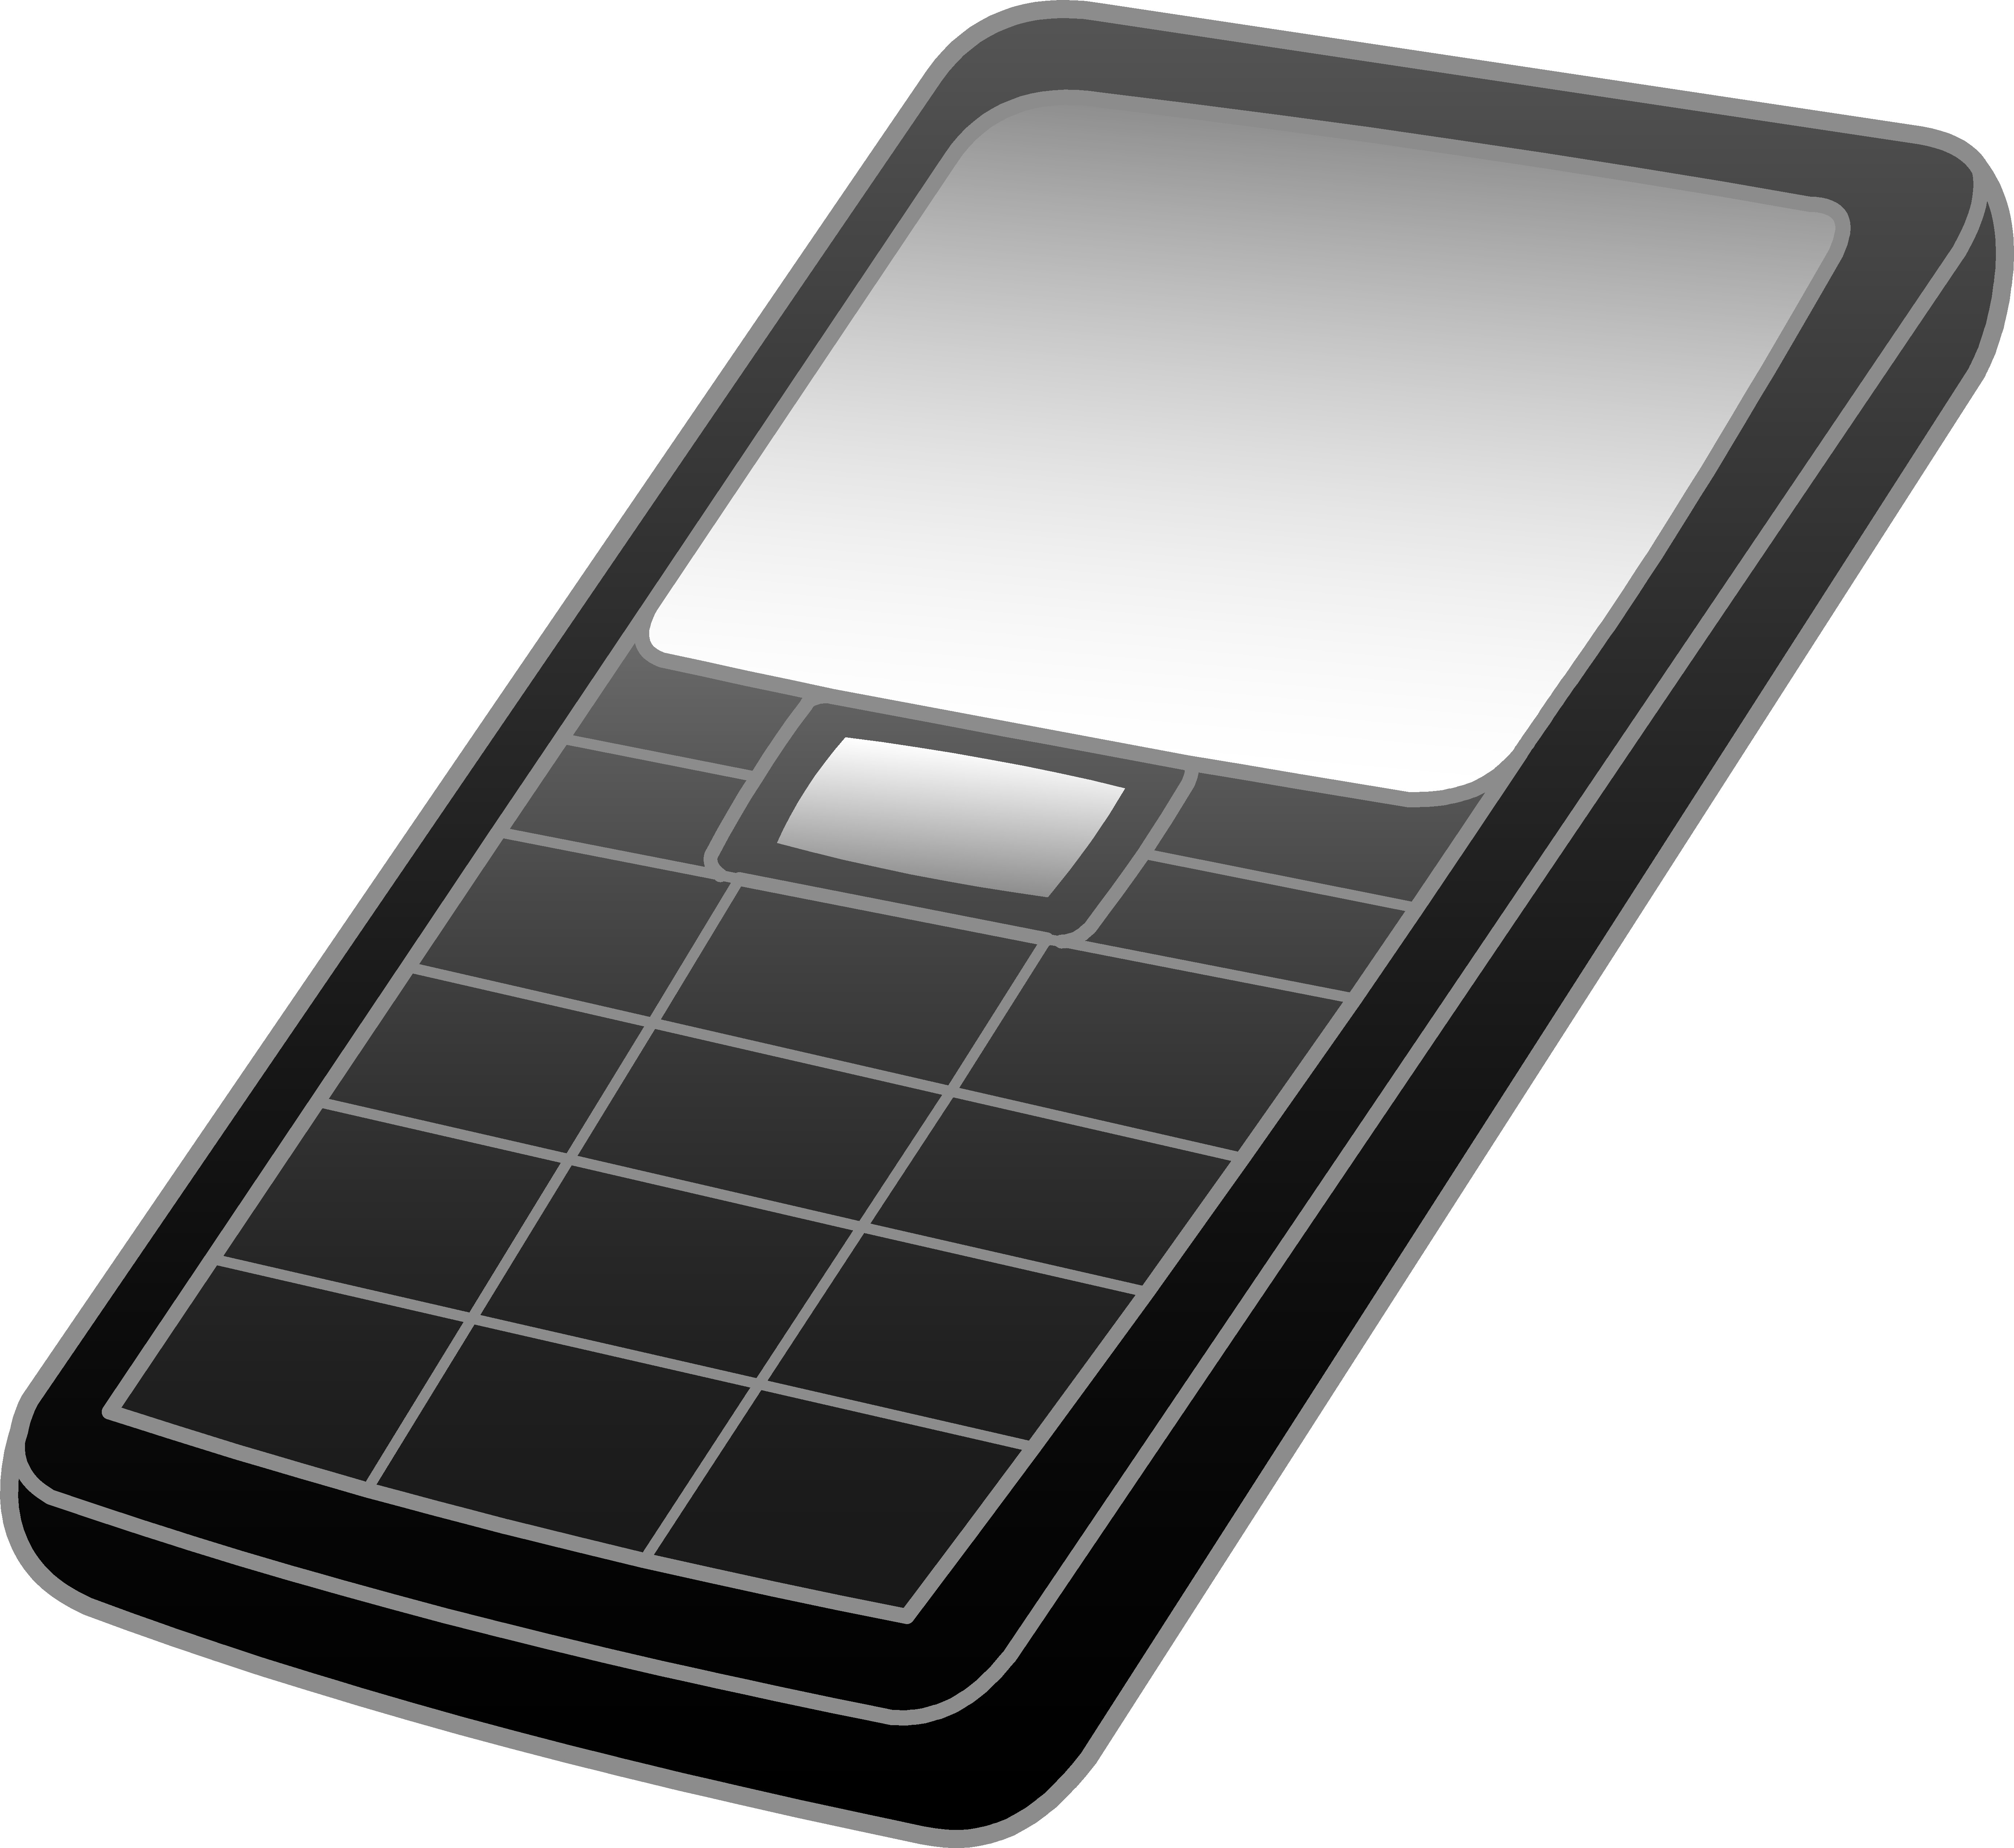 Black and grey cell. Cellphone clipart clip art